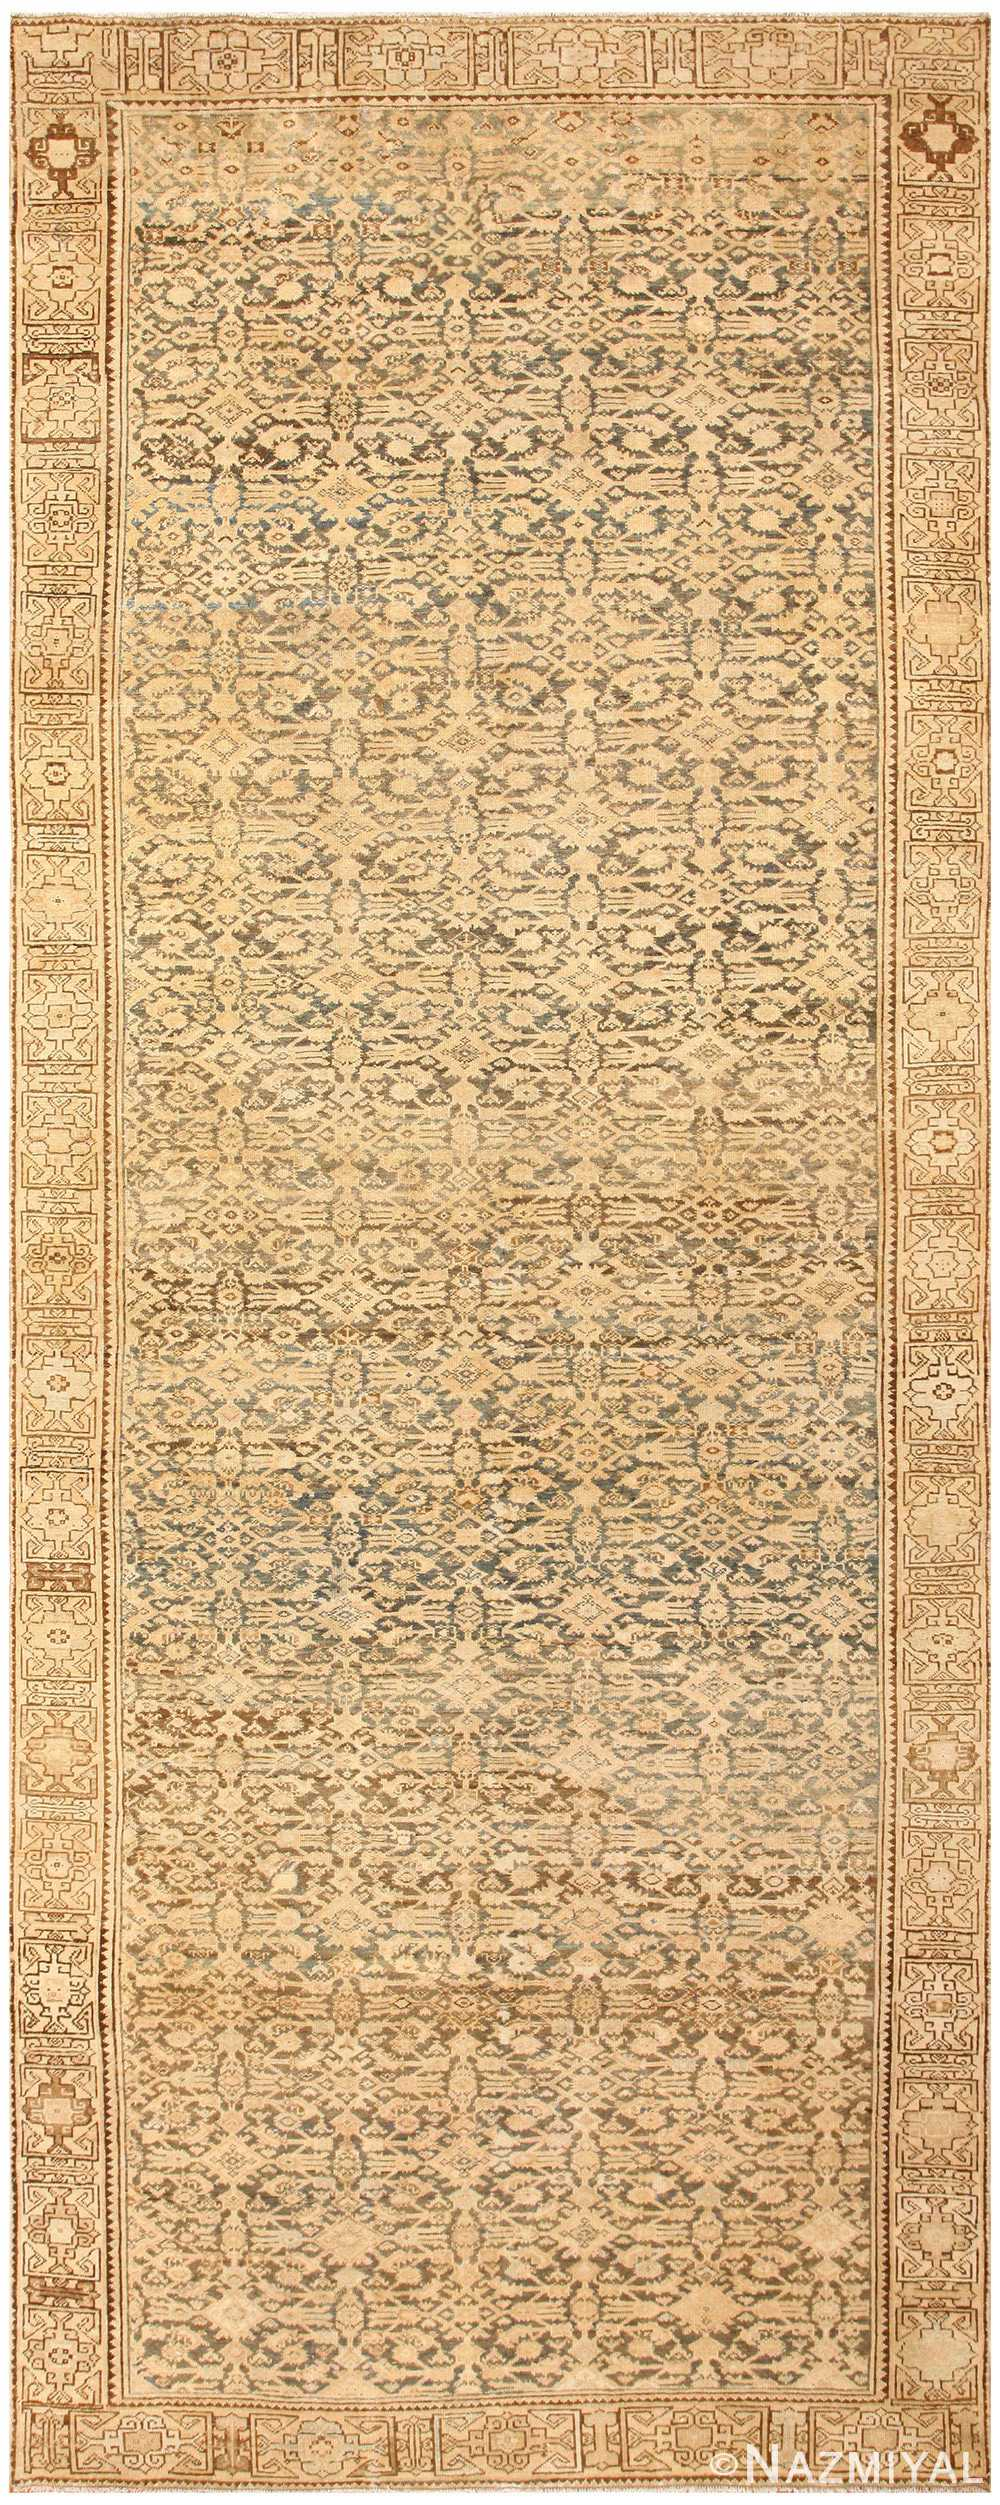 Antique Persian Malayer Rug 50439 Detail/Large View